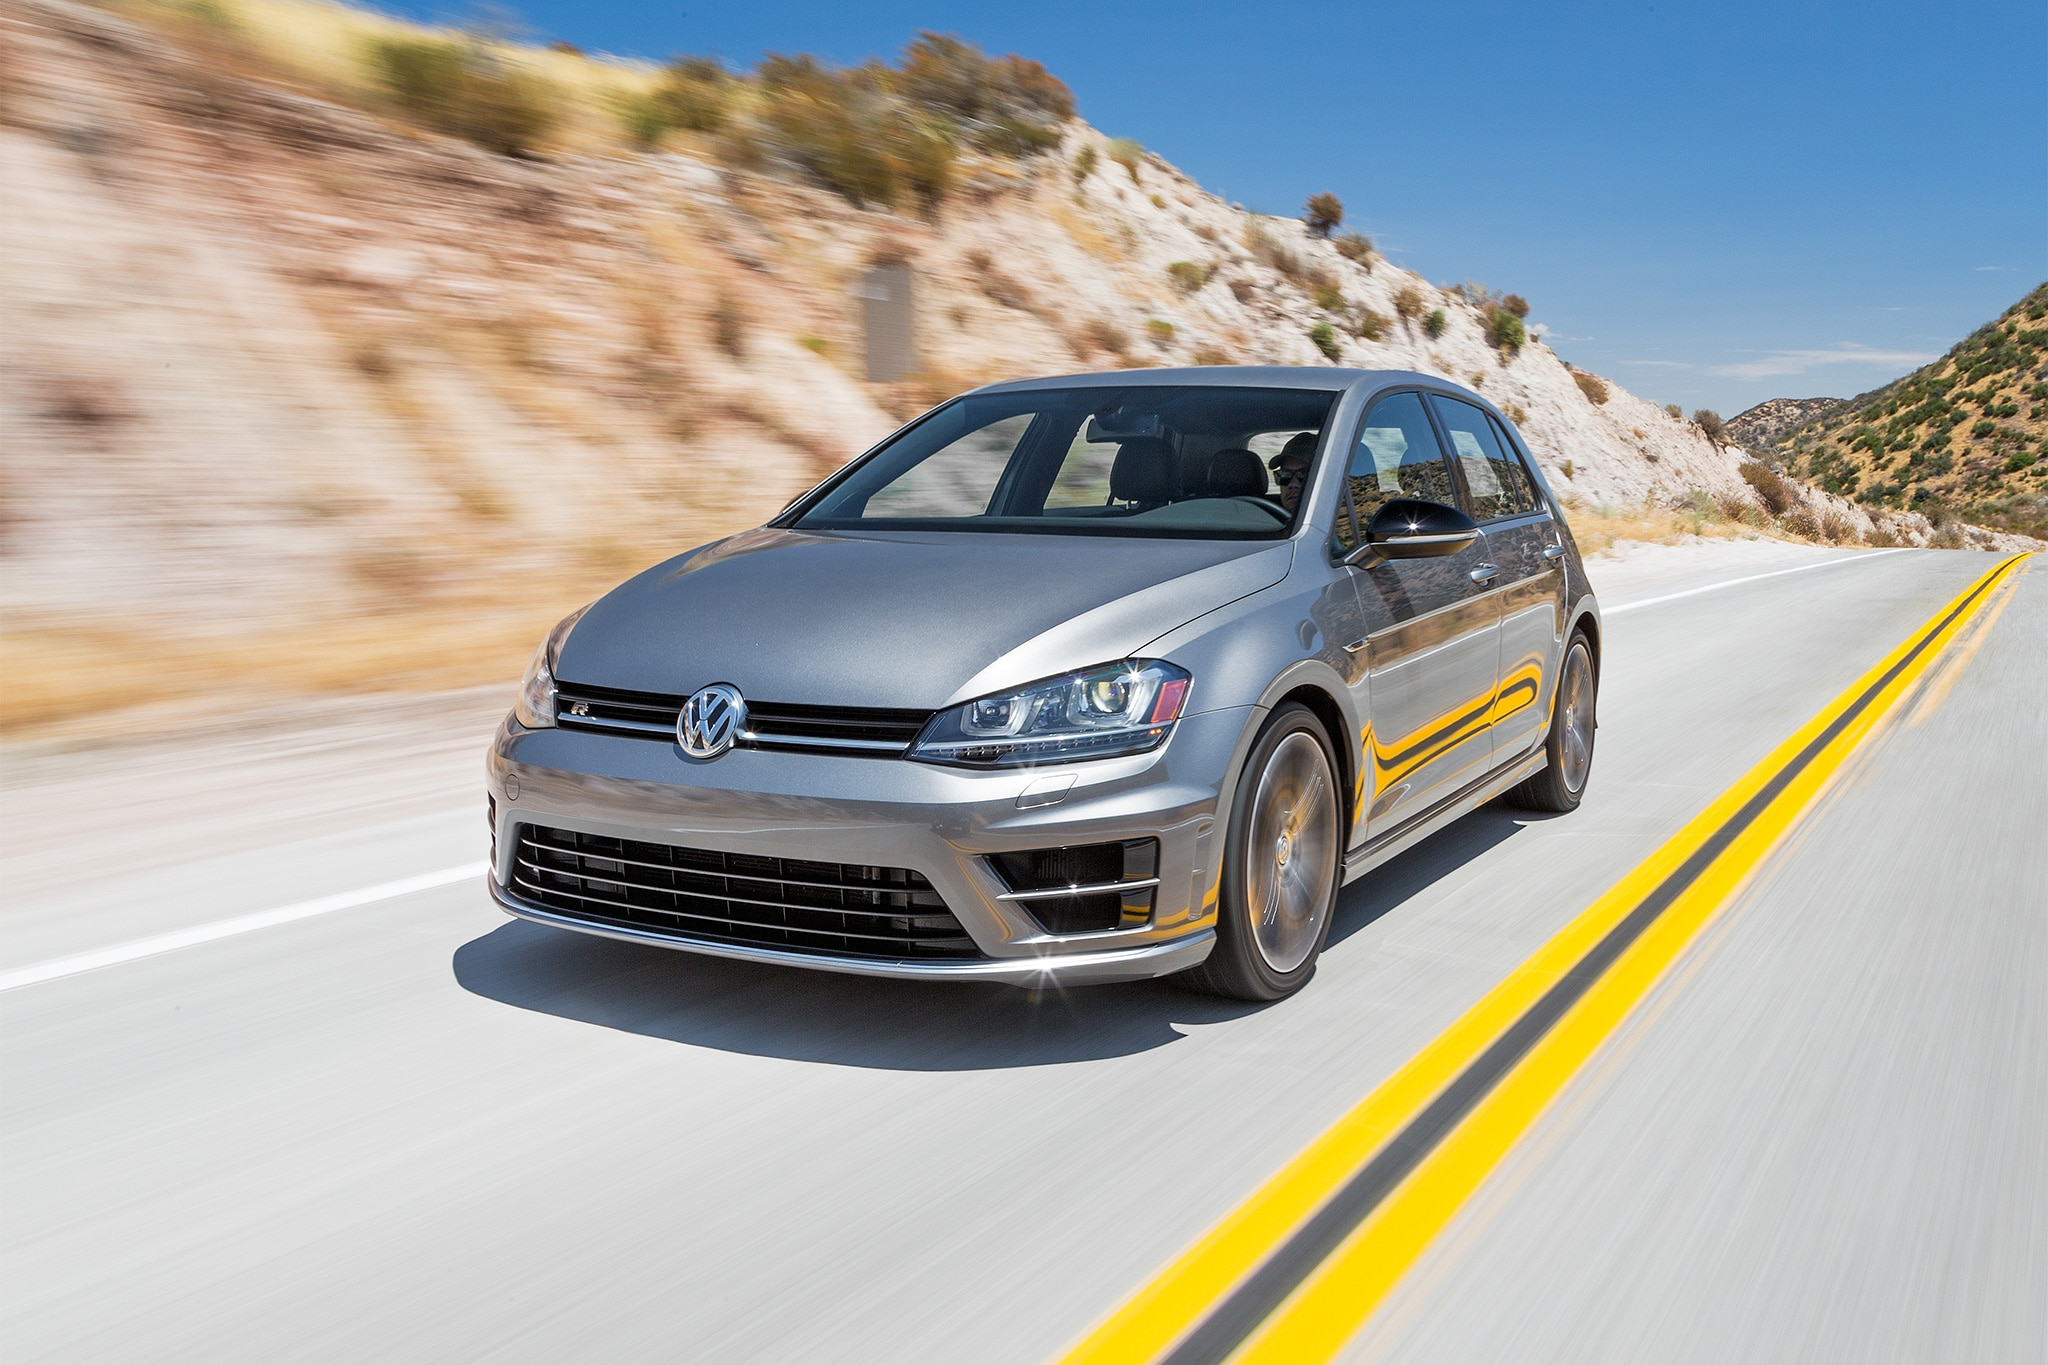 2016 Volkswagen Golf R Front Three Quarter In Motion 09